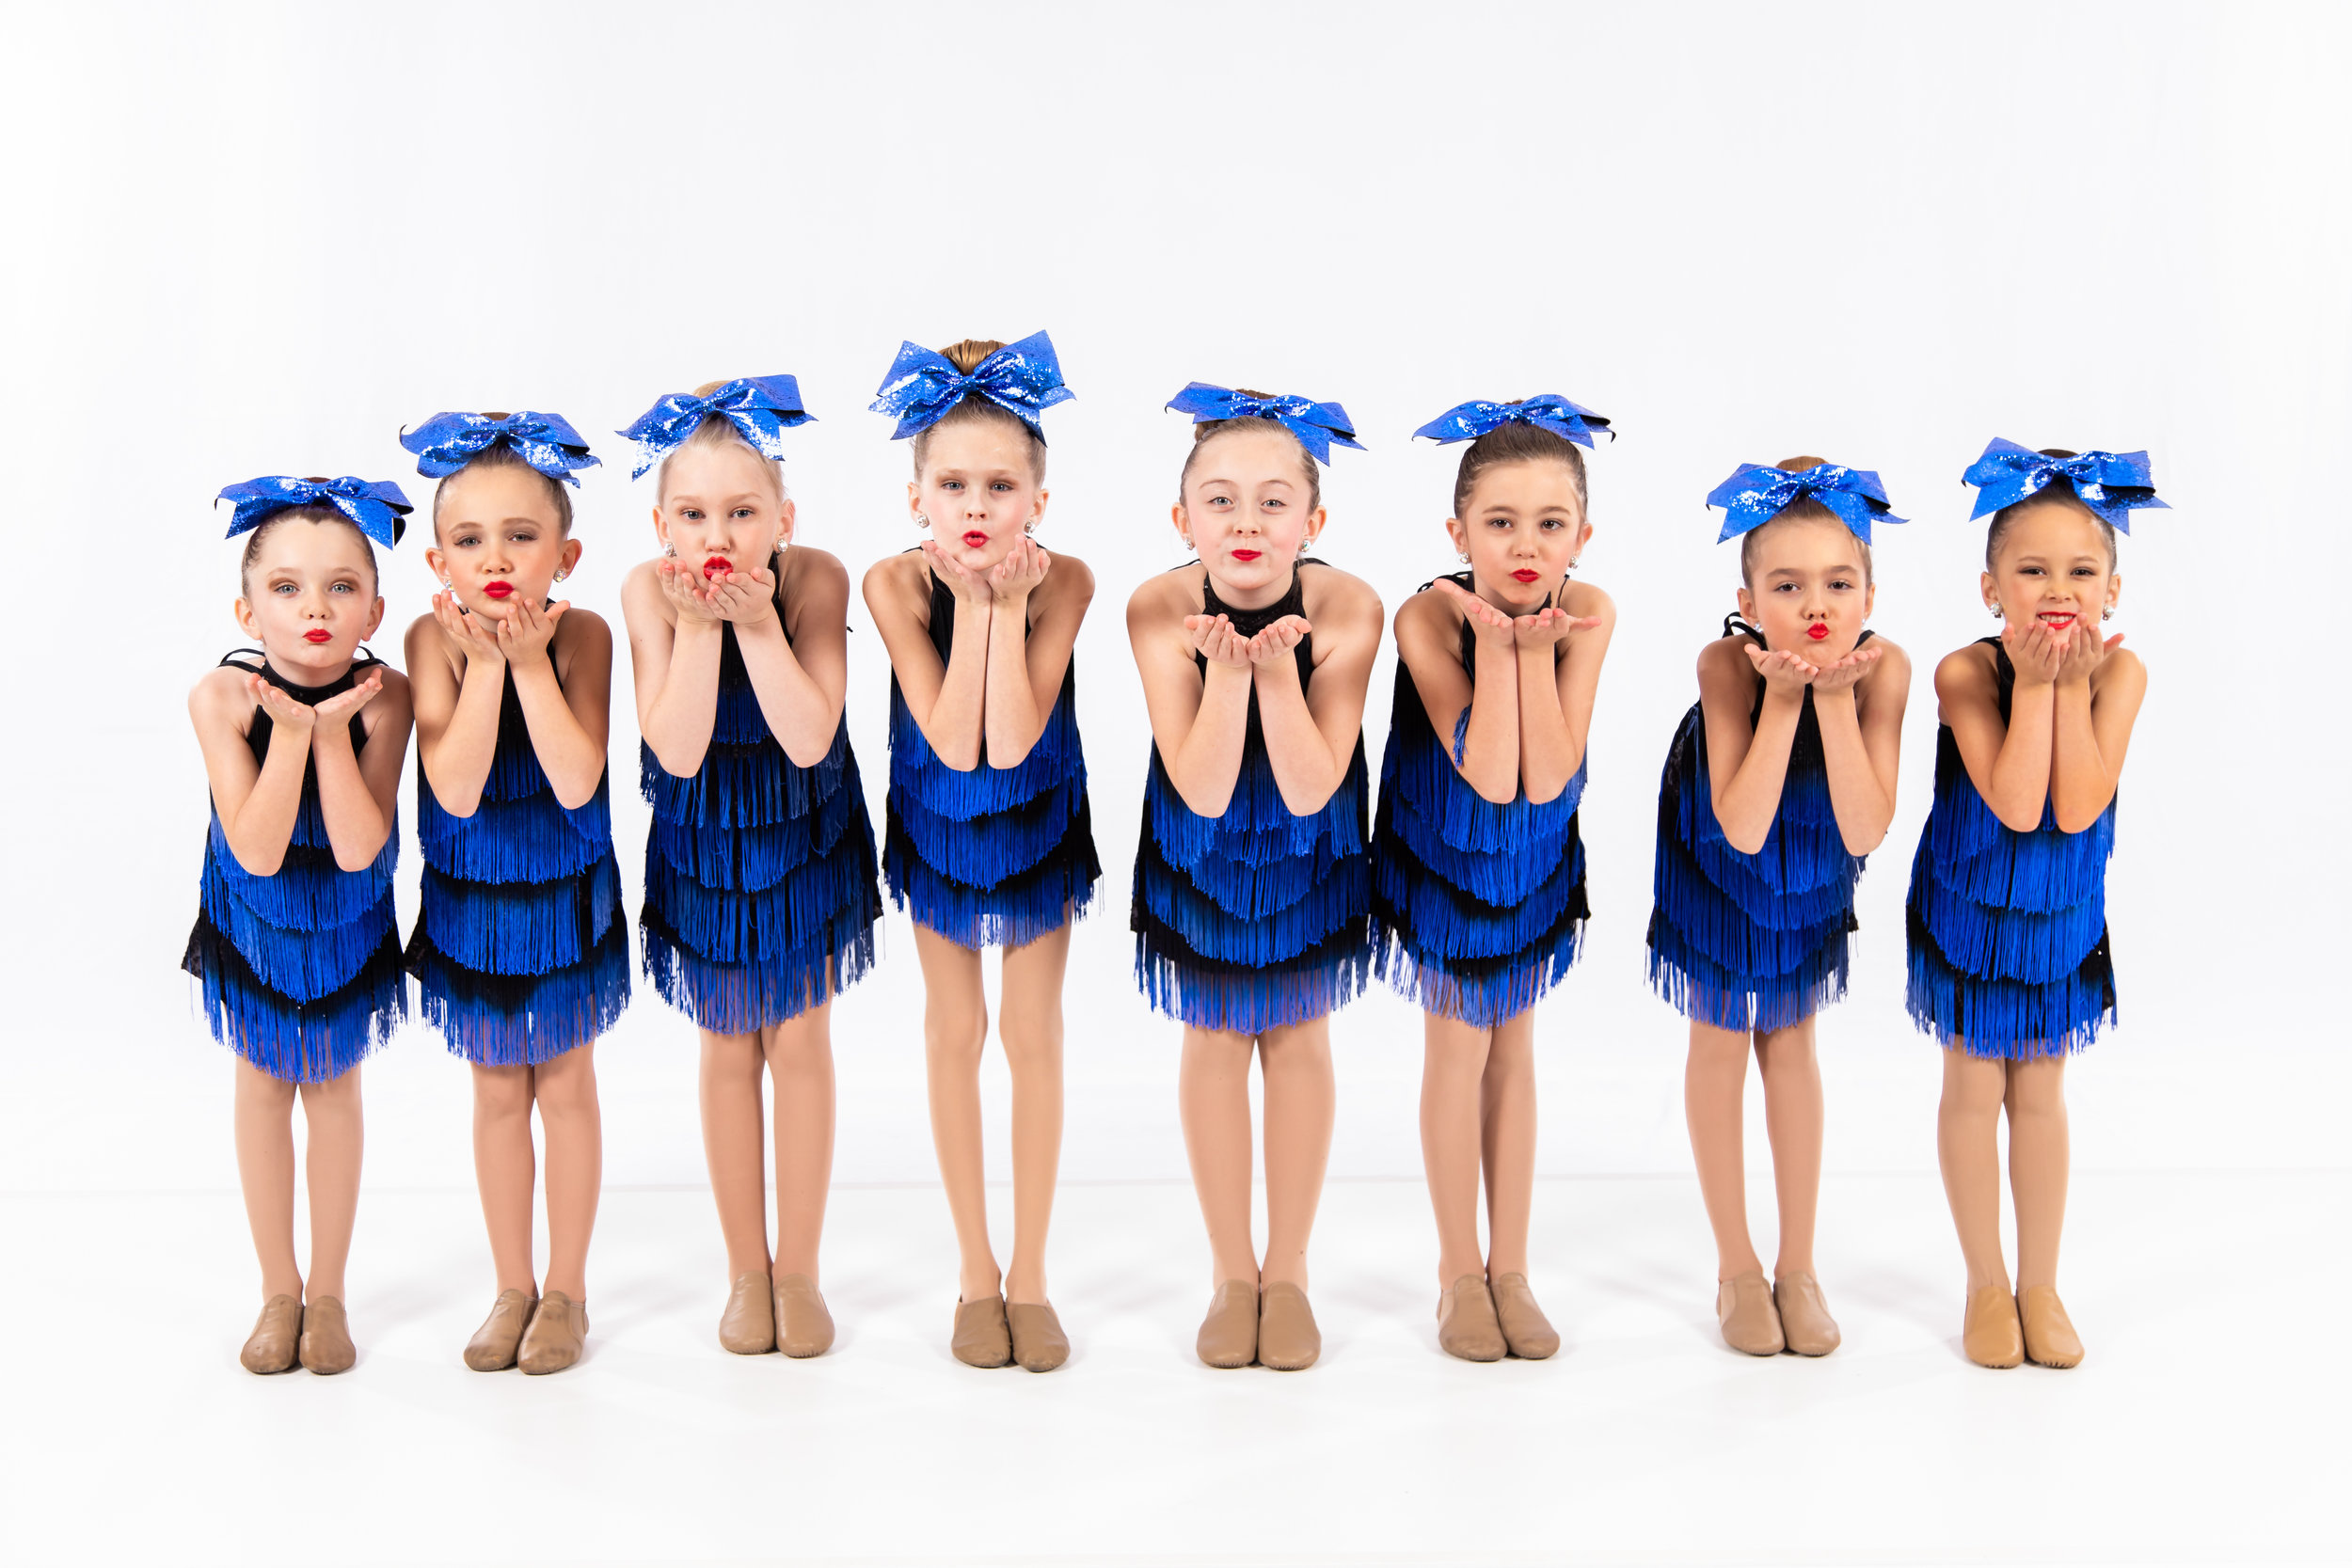 Twinkles Dance Program - PacWest's Pre-Competition Team!Click the image for more information